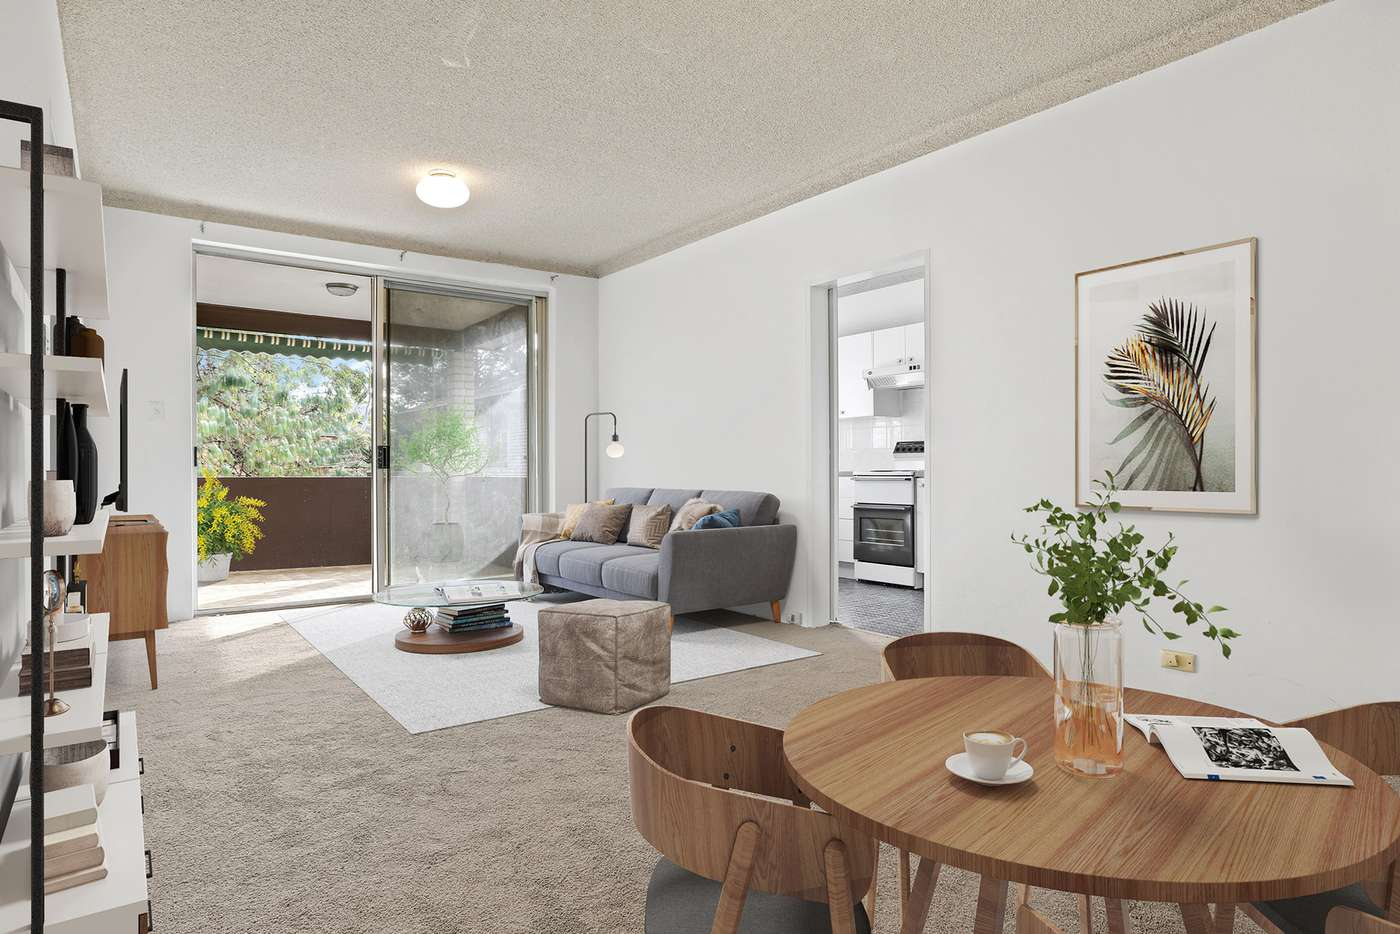 Main view of Homely apartment listing, 39/34-40 Edensor Street, Epping NSW 2121